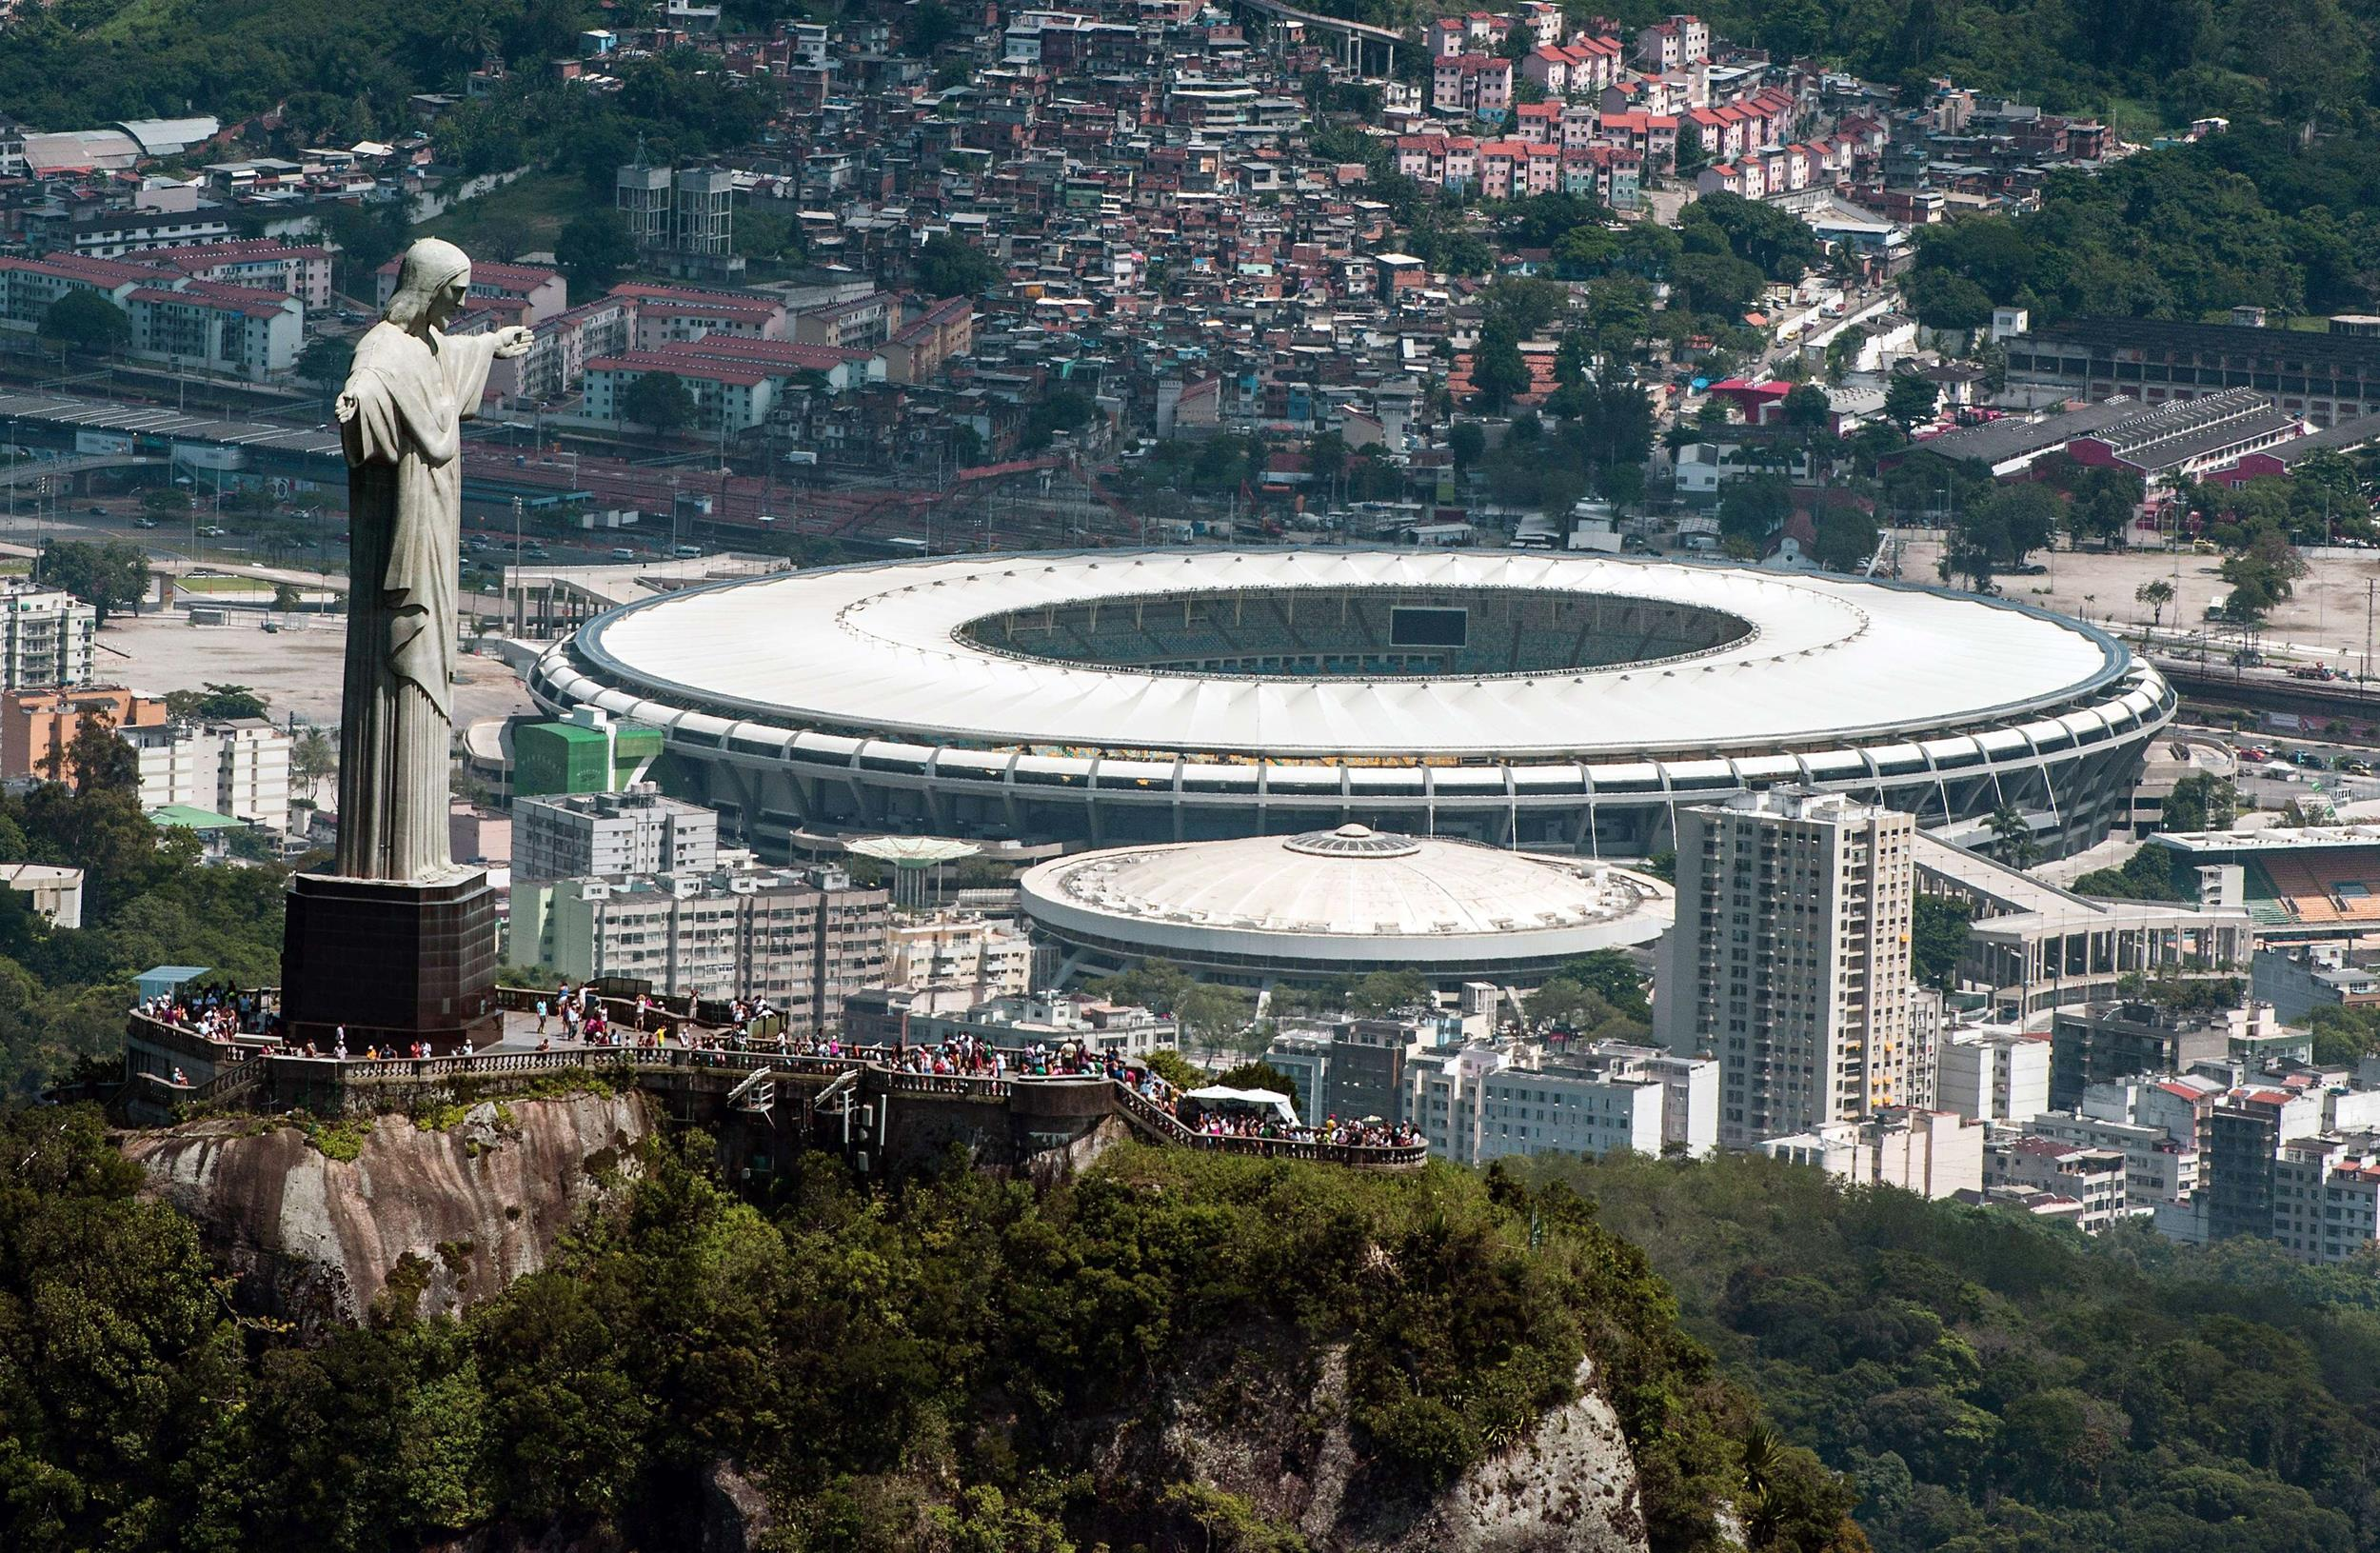 Image: Aerial view of the Christ the Redeemer statue atop Corcovado Hill and the Mario Filho (Maracana) stadium in Rio de Janeiro